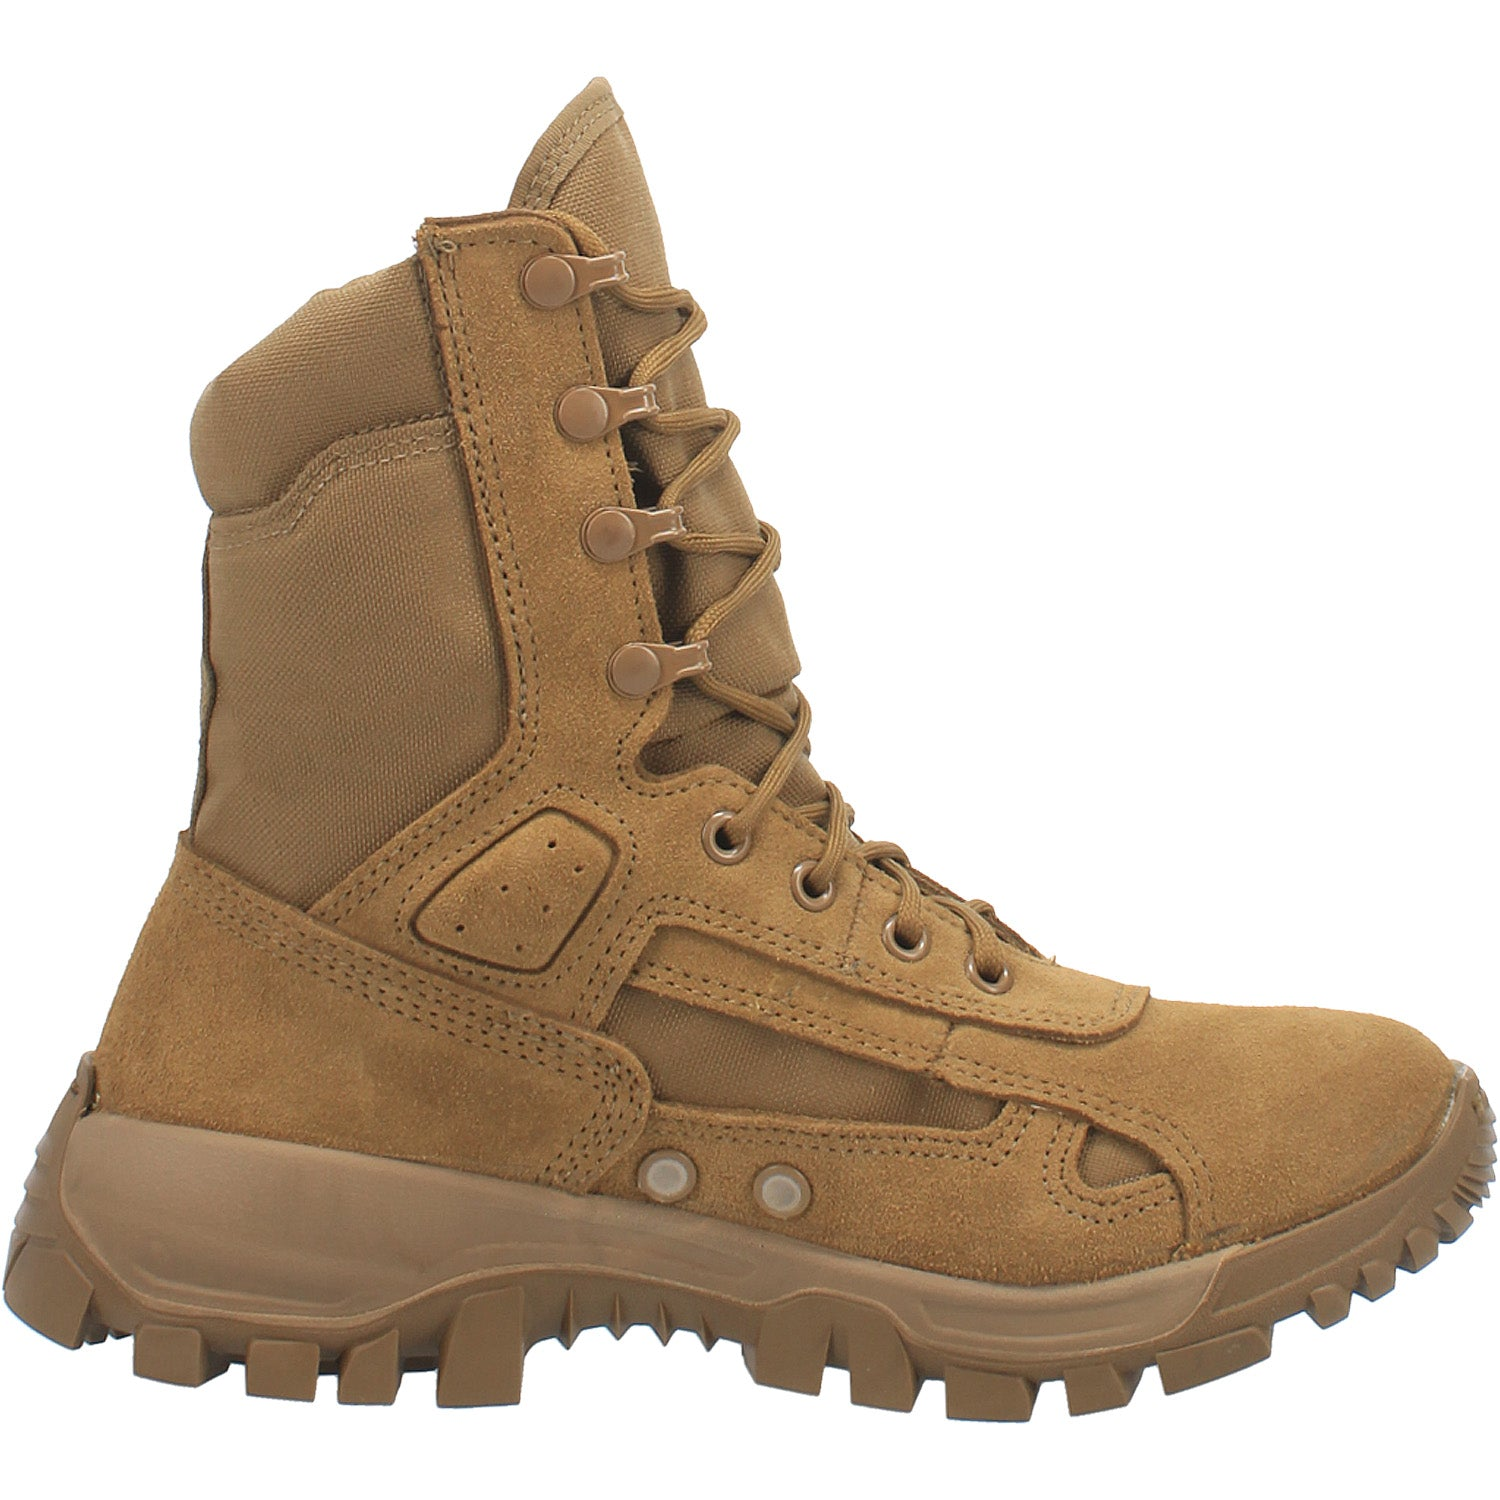 Terassault T1 Hot Weather Performance Combat Boot 14940747333674